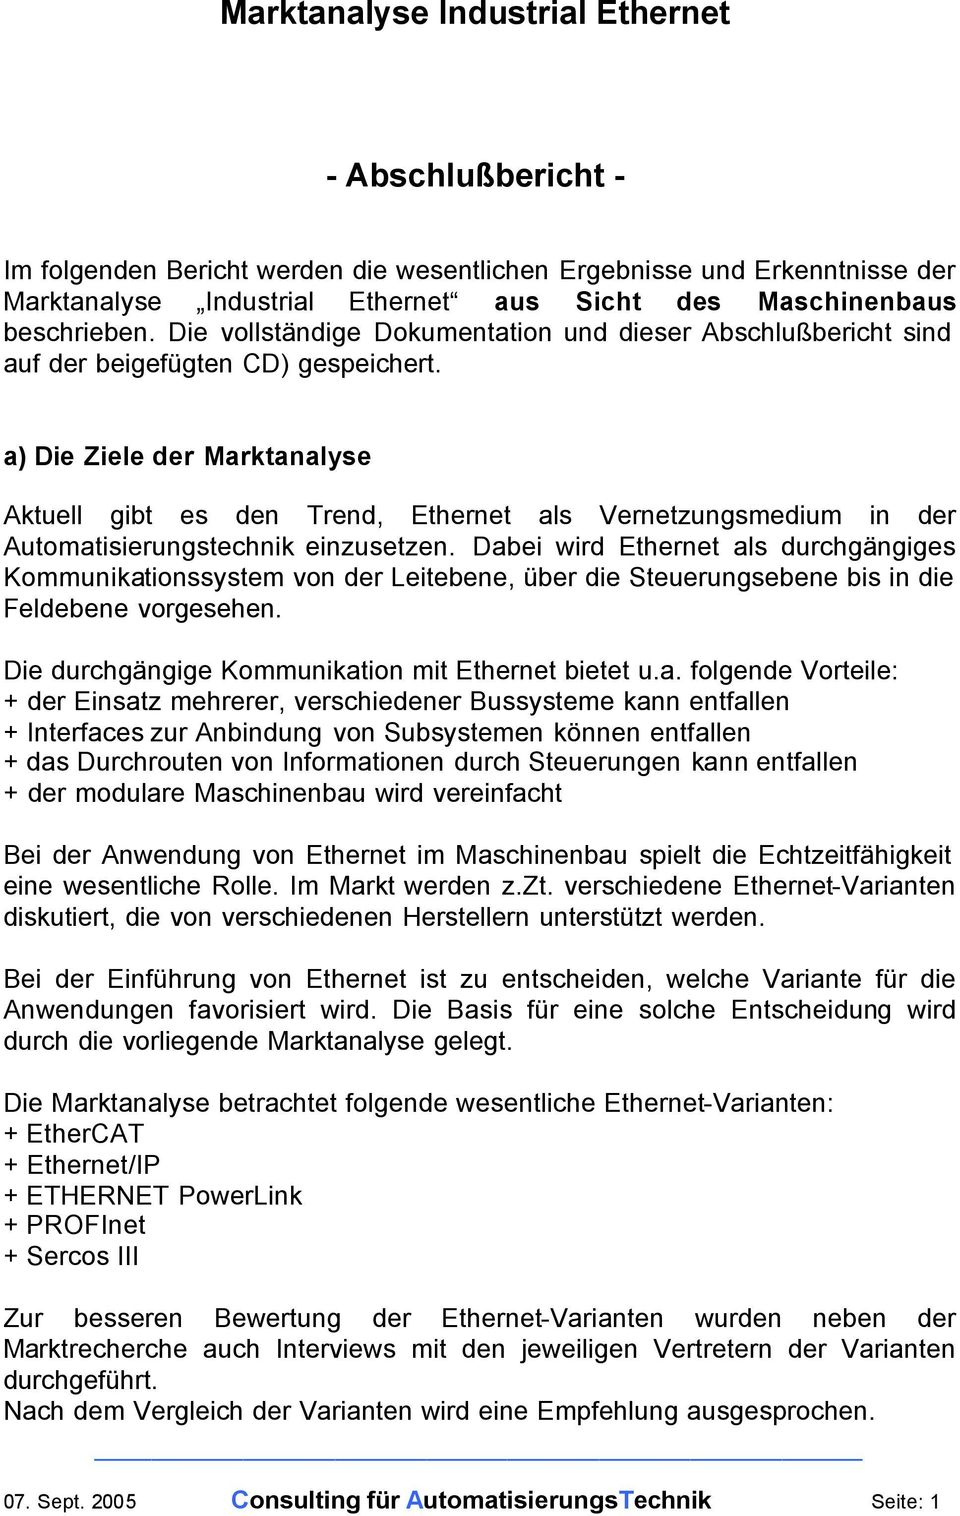 werbekonzeption projekt dokumentation pdf